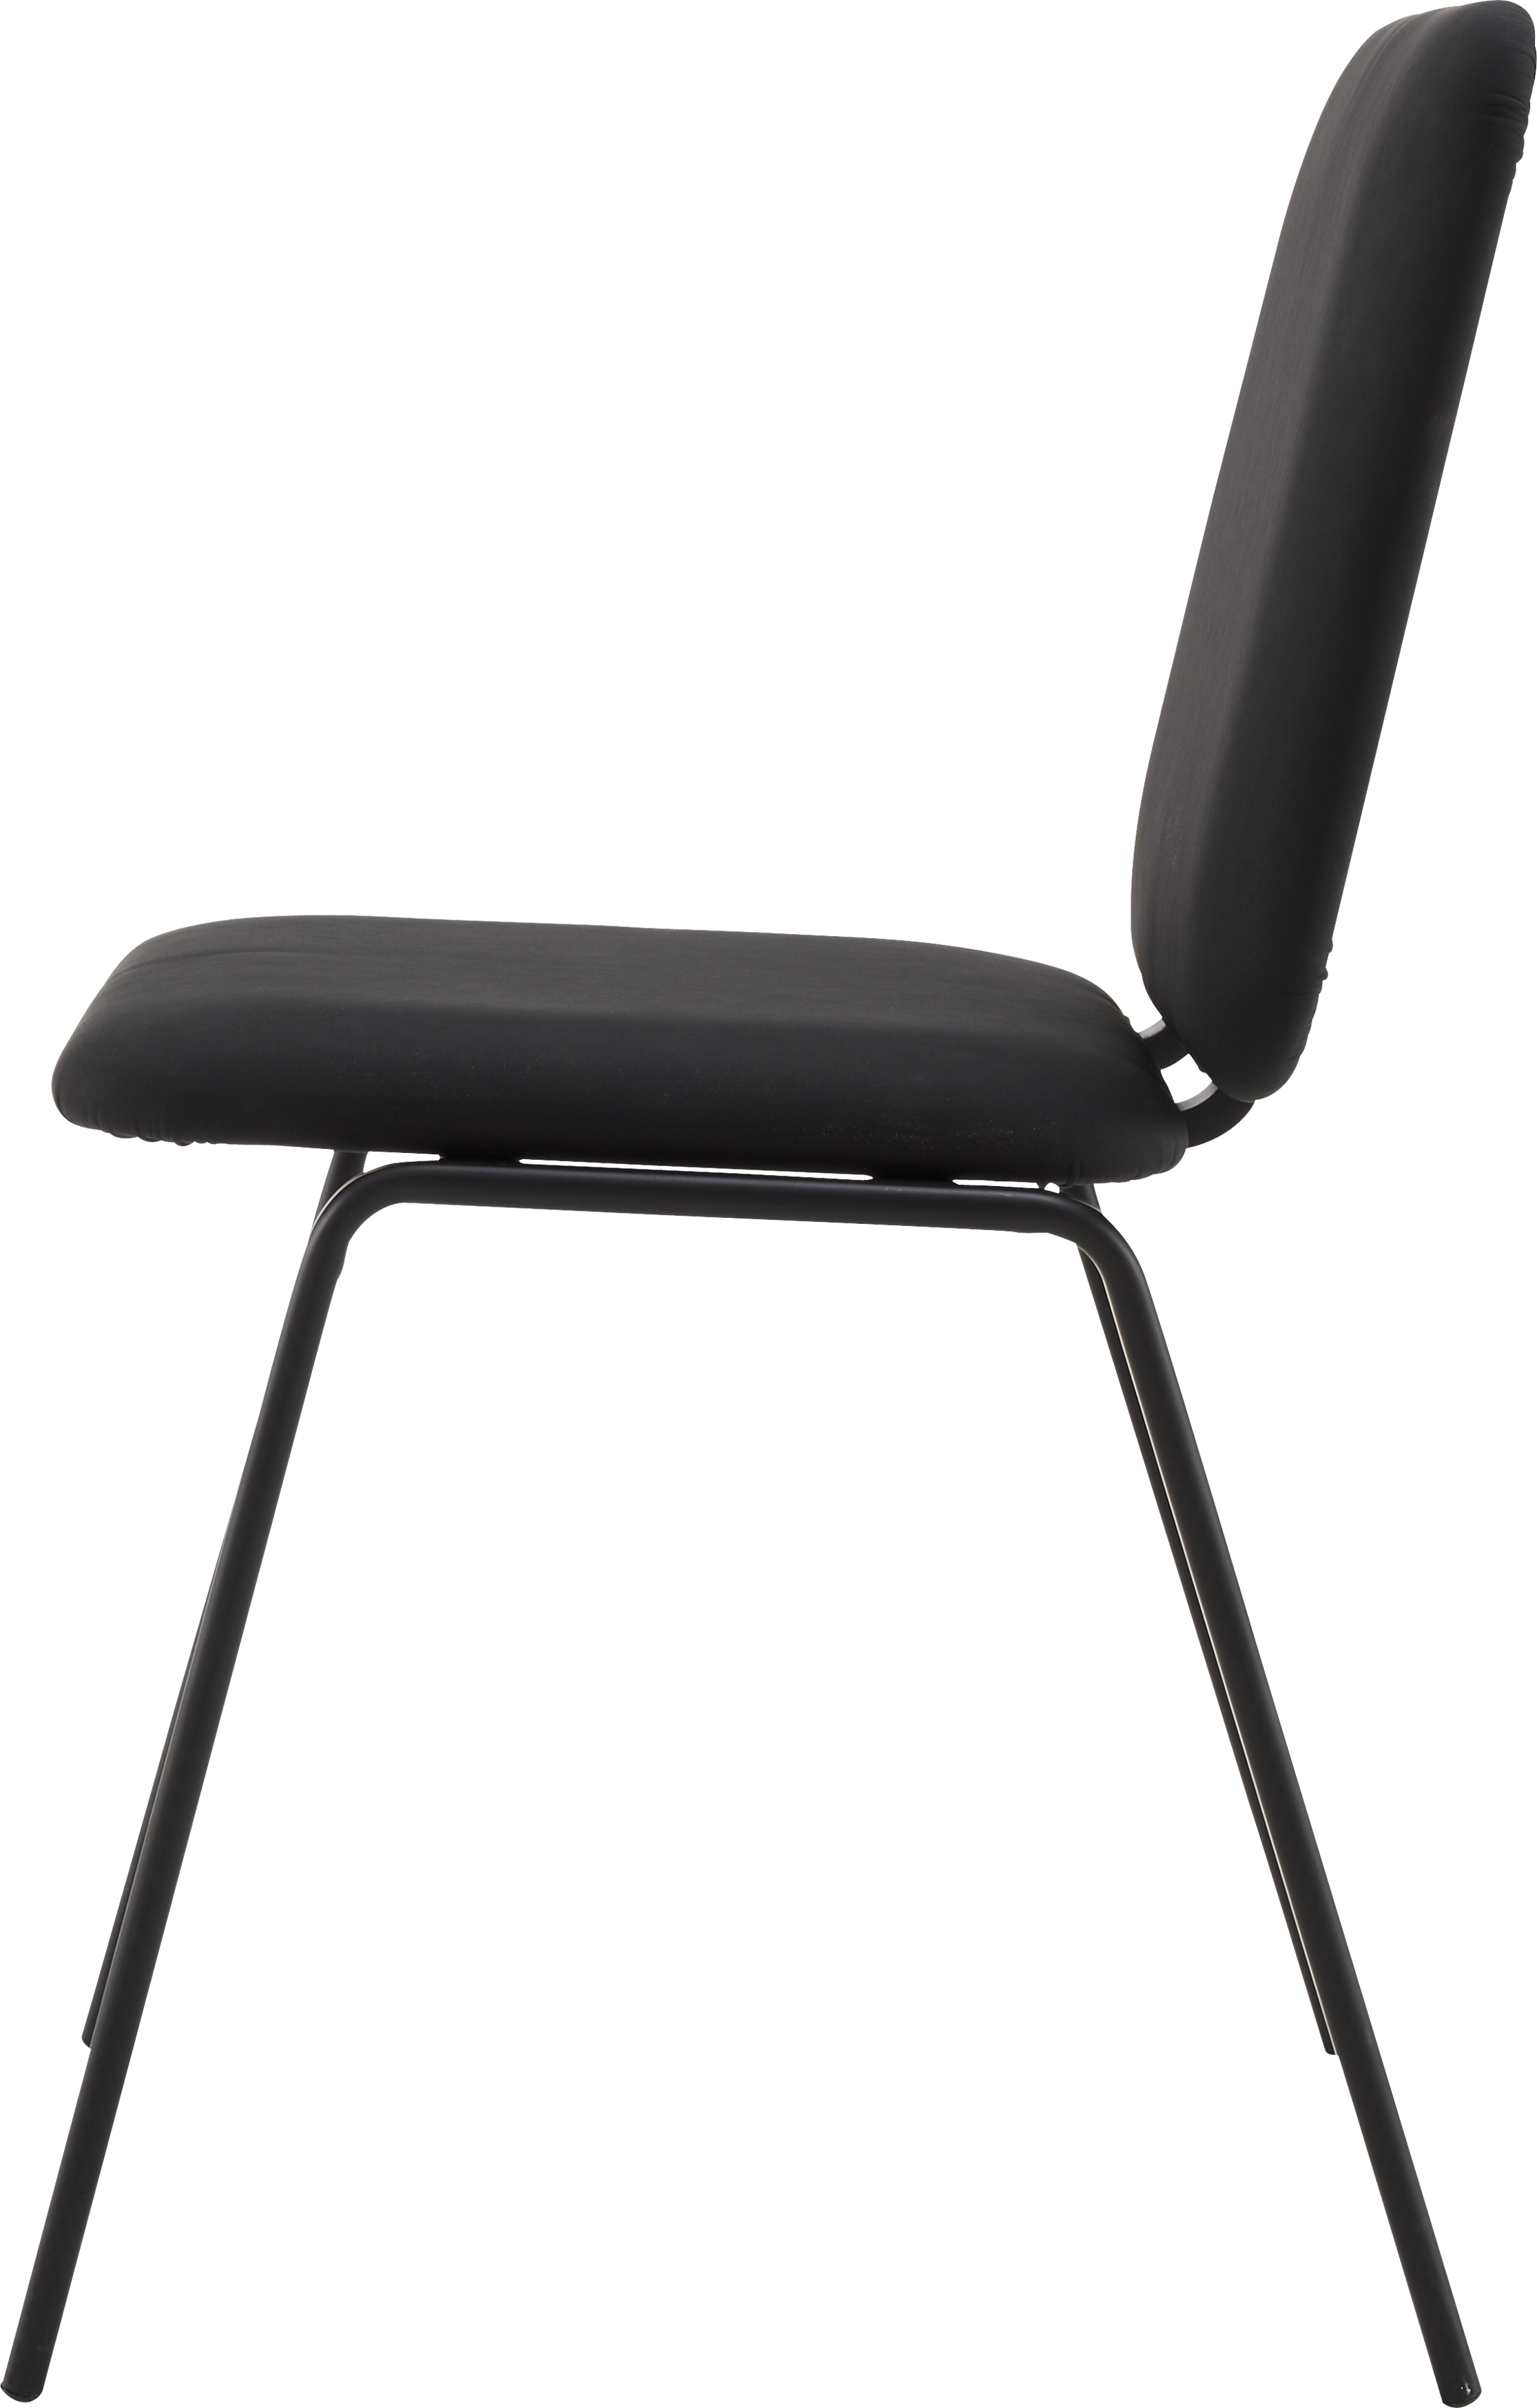 Chair Png Image Purepng Free Transparent Cc0 Png Image